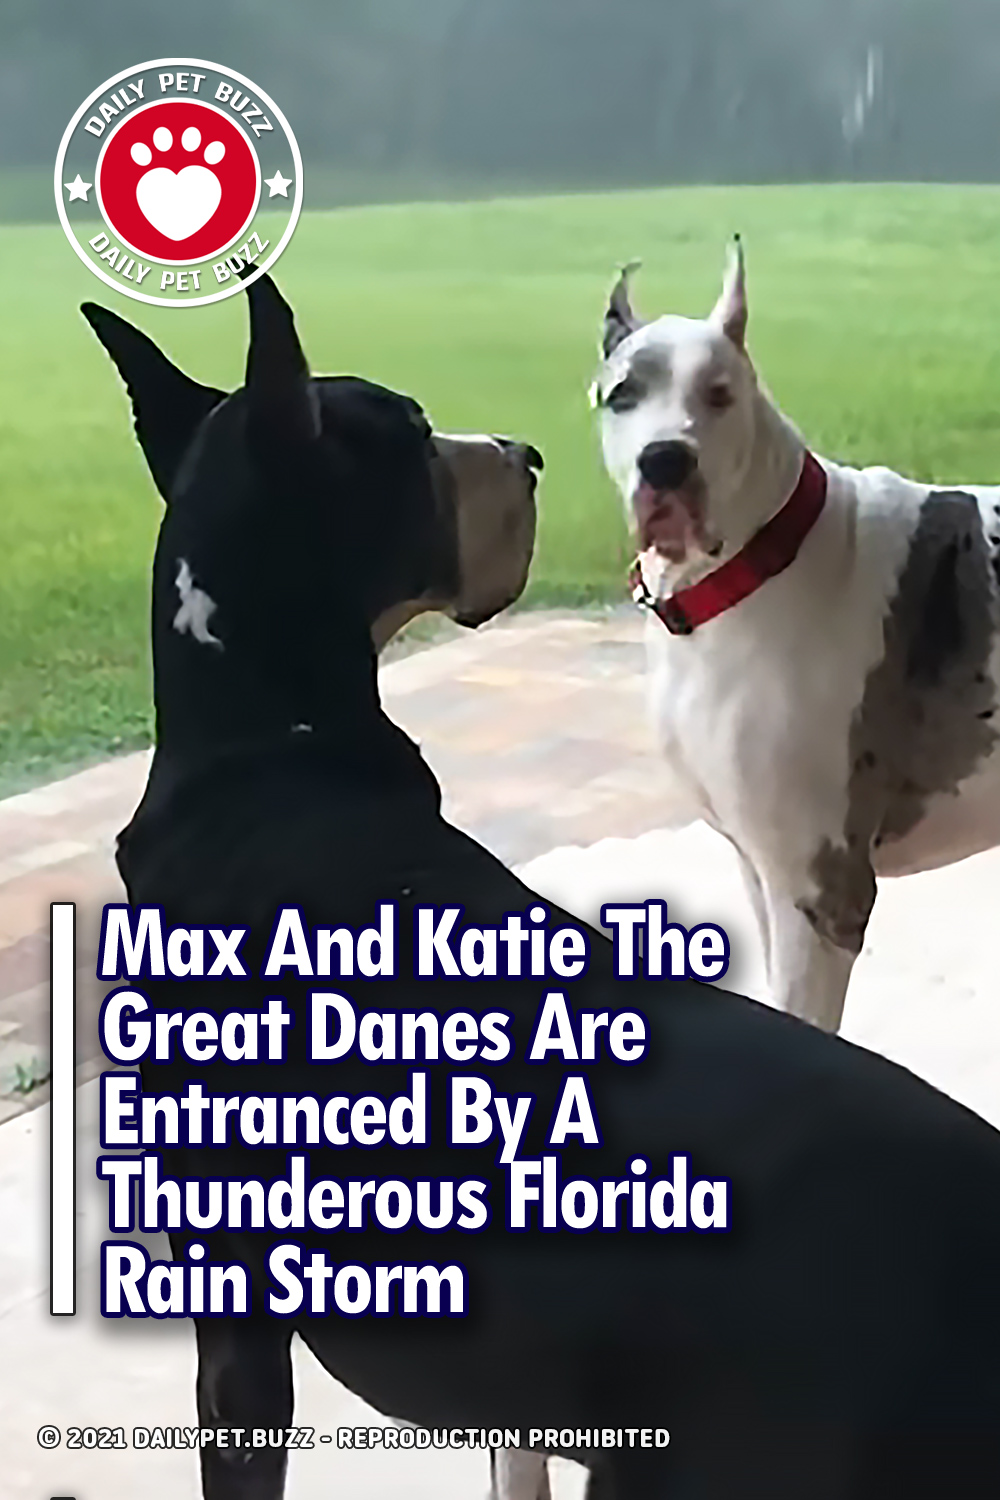 Max And Katie The Great Danes Are Entranced By A Thunderous Florida Rain Storm